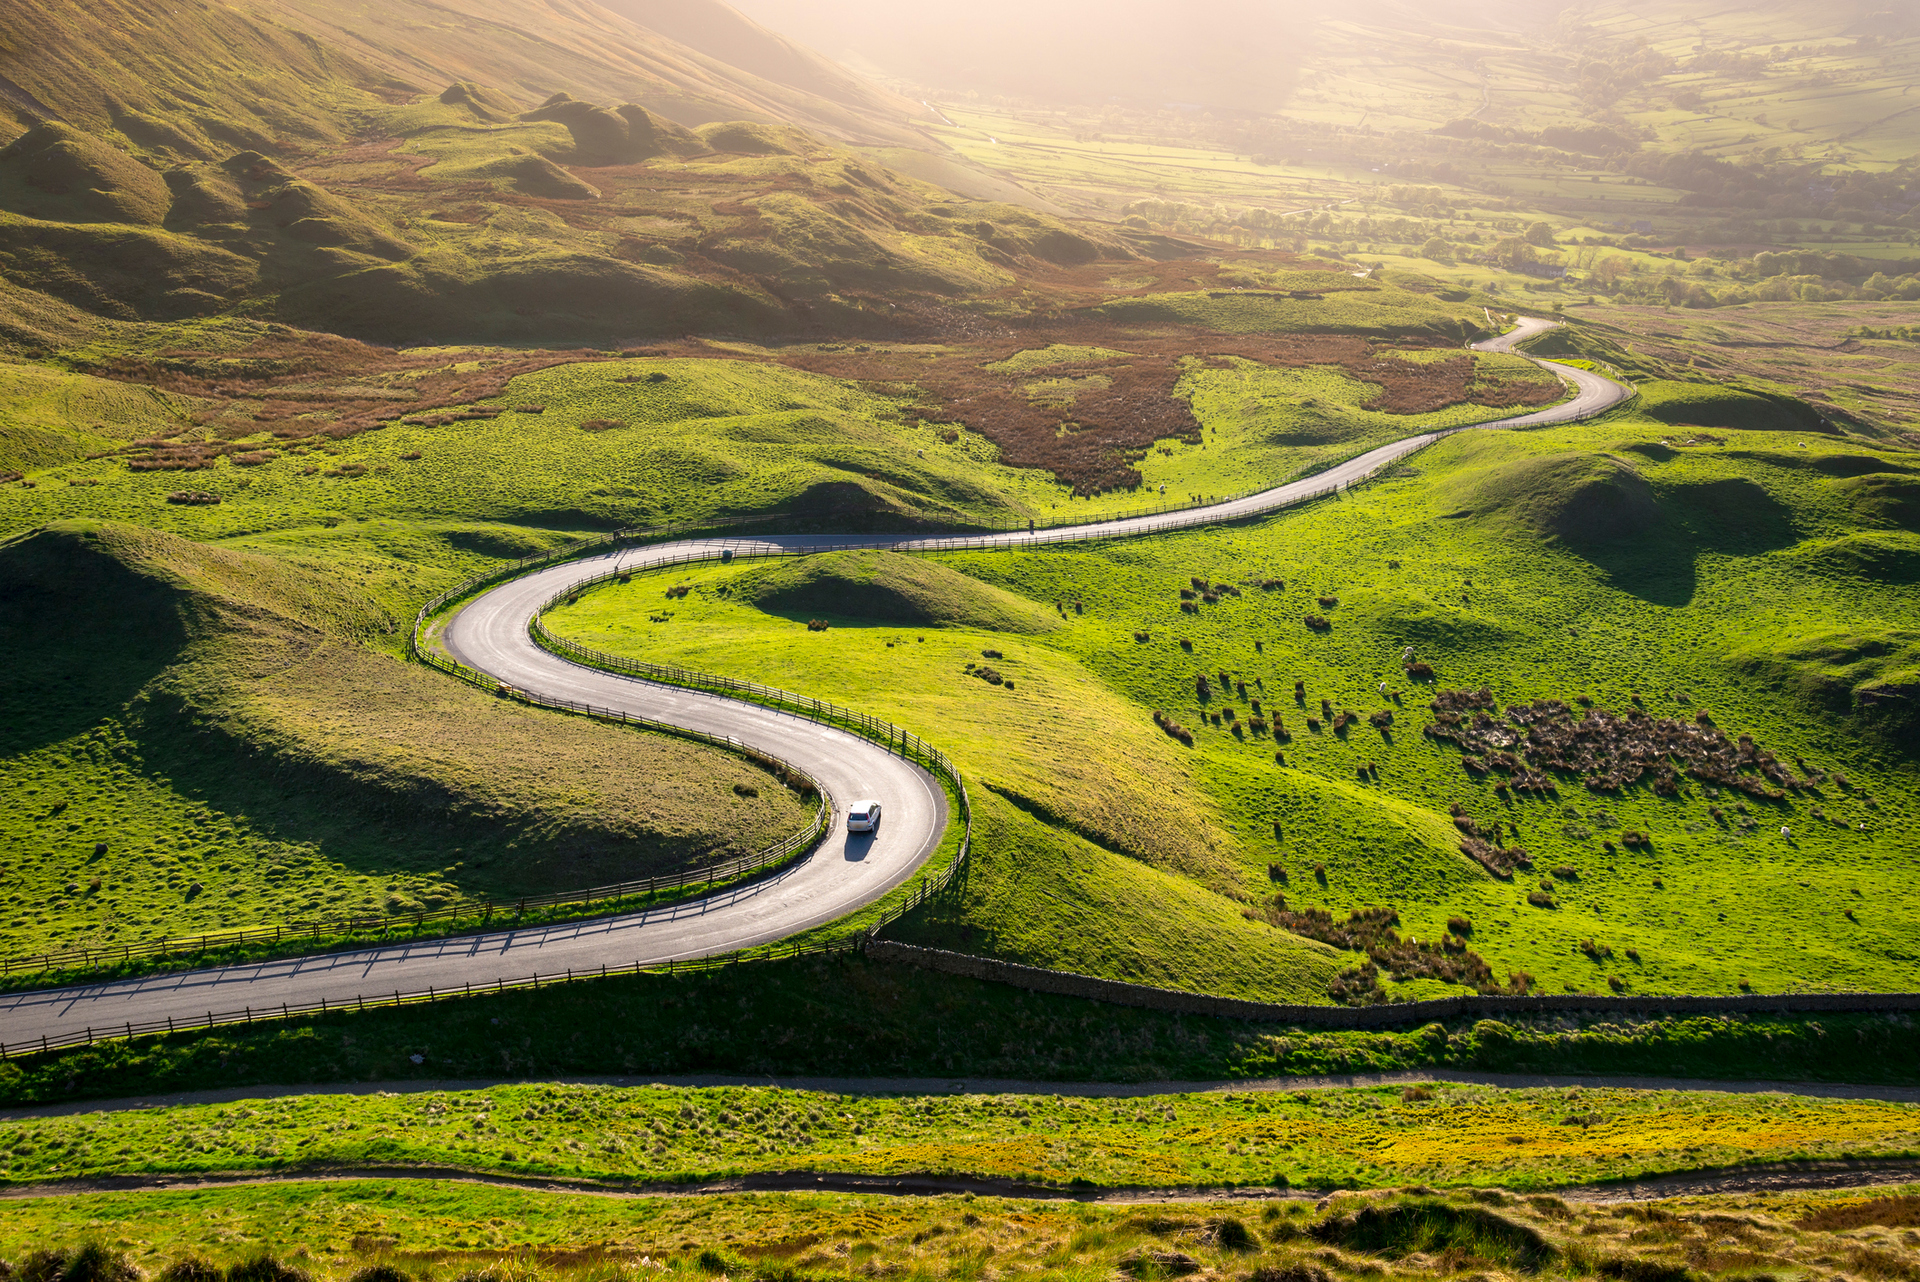 UK: Get away from London and experience the best road-trips around Britain